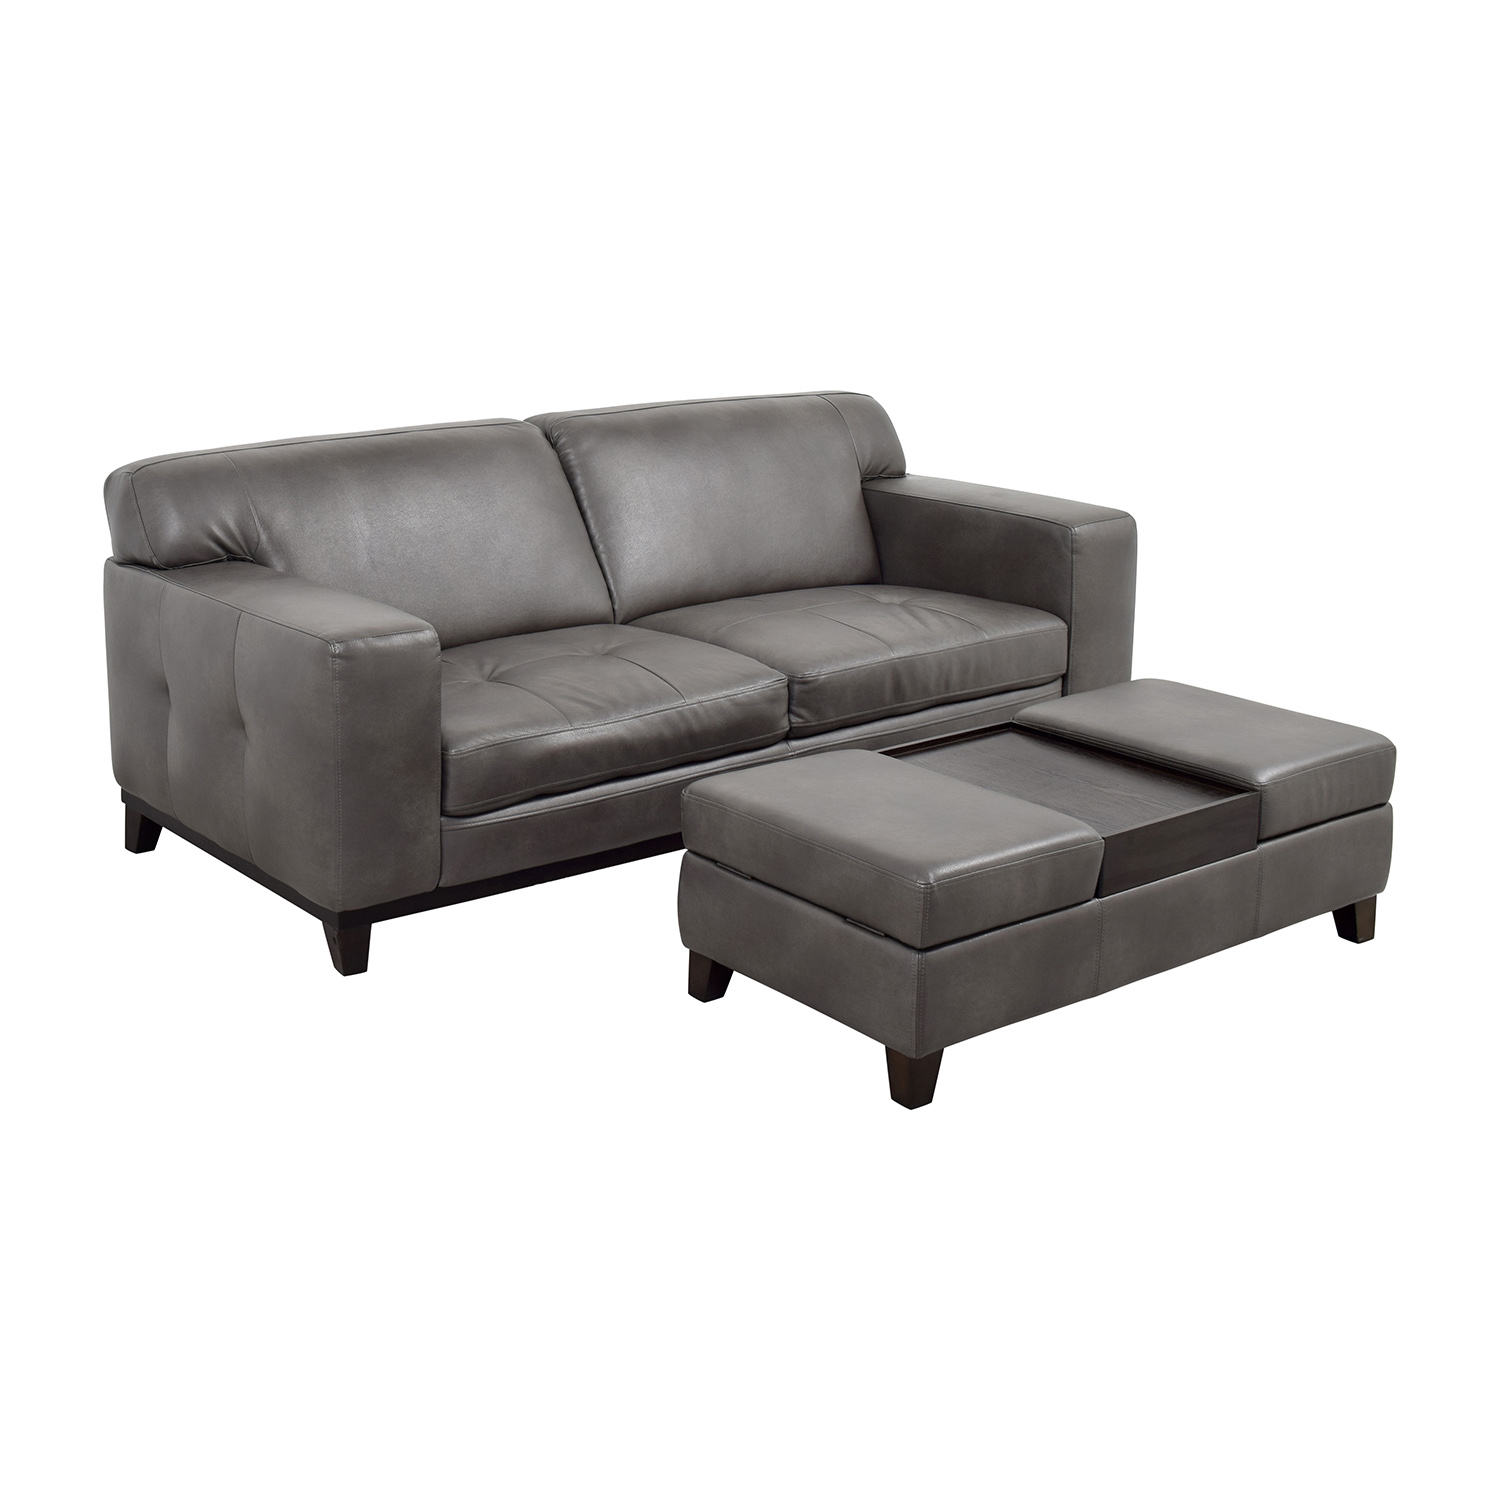 raymour and flanigan sofas 68 raymour amp flanigan raymour amp flanigan grey 30368